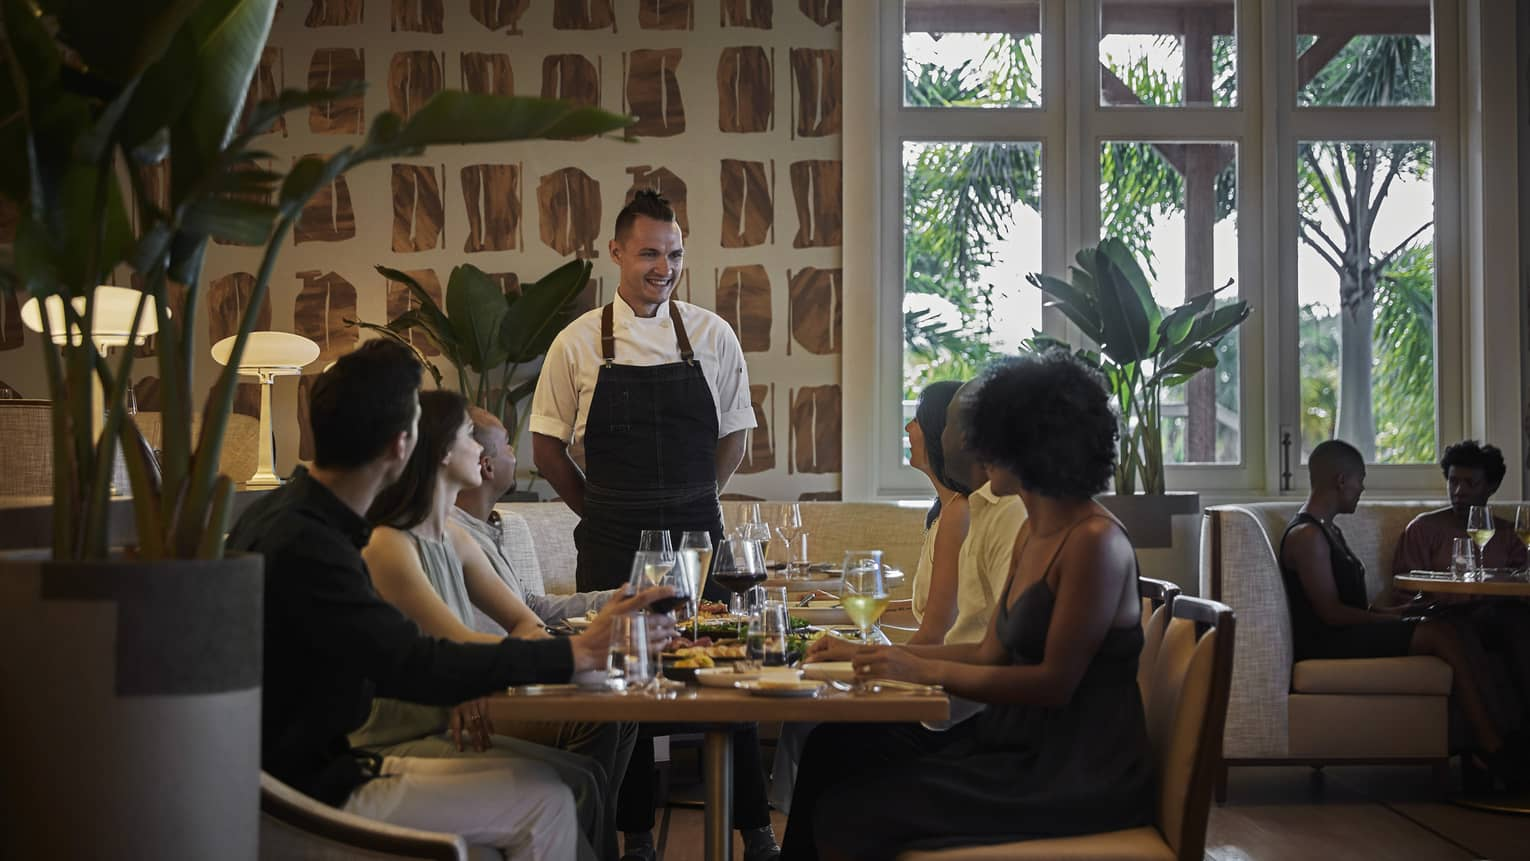 A chef talks to a table of four people inside restaurant, windows look out to trees